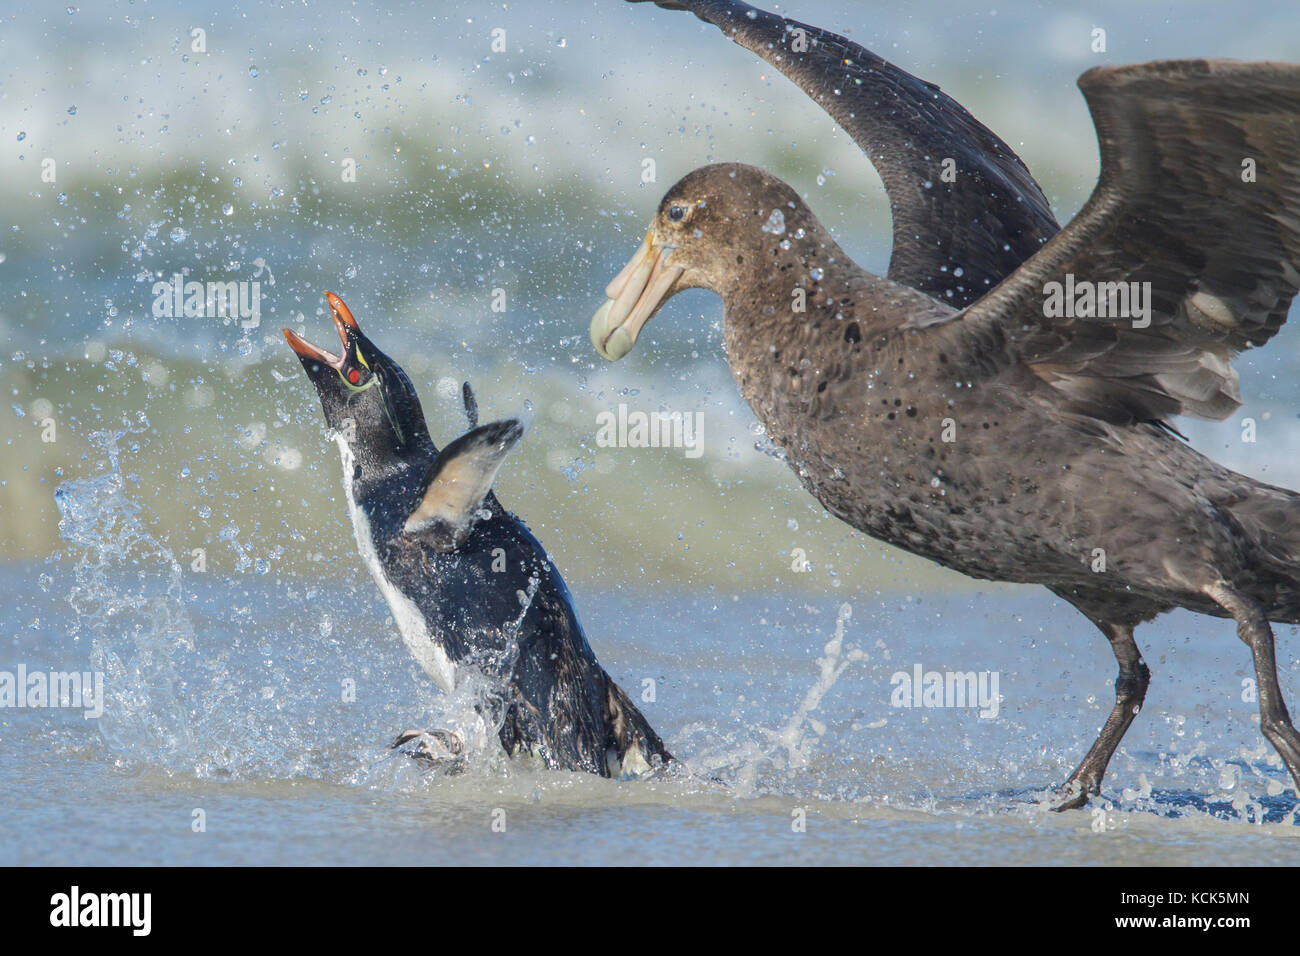 A Giant Petrel attacks a Rockhopper Penguin, Eudyptes chrysocome, as it emerges from the ocean in the Falkland Islands. - Stock Image